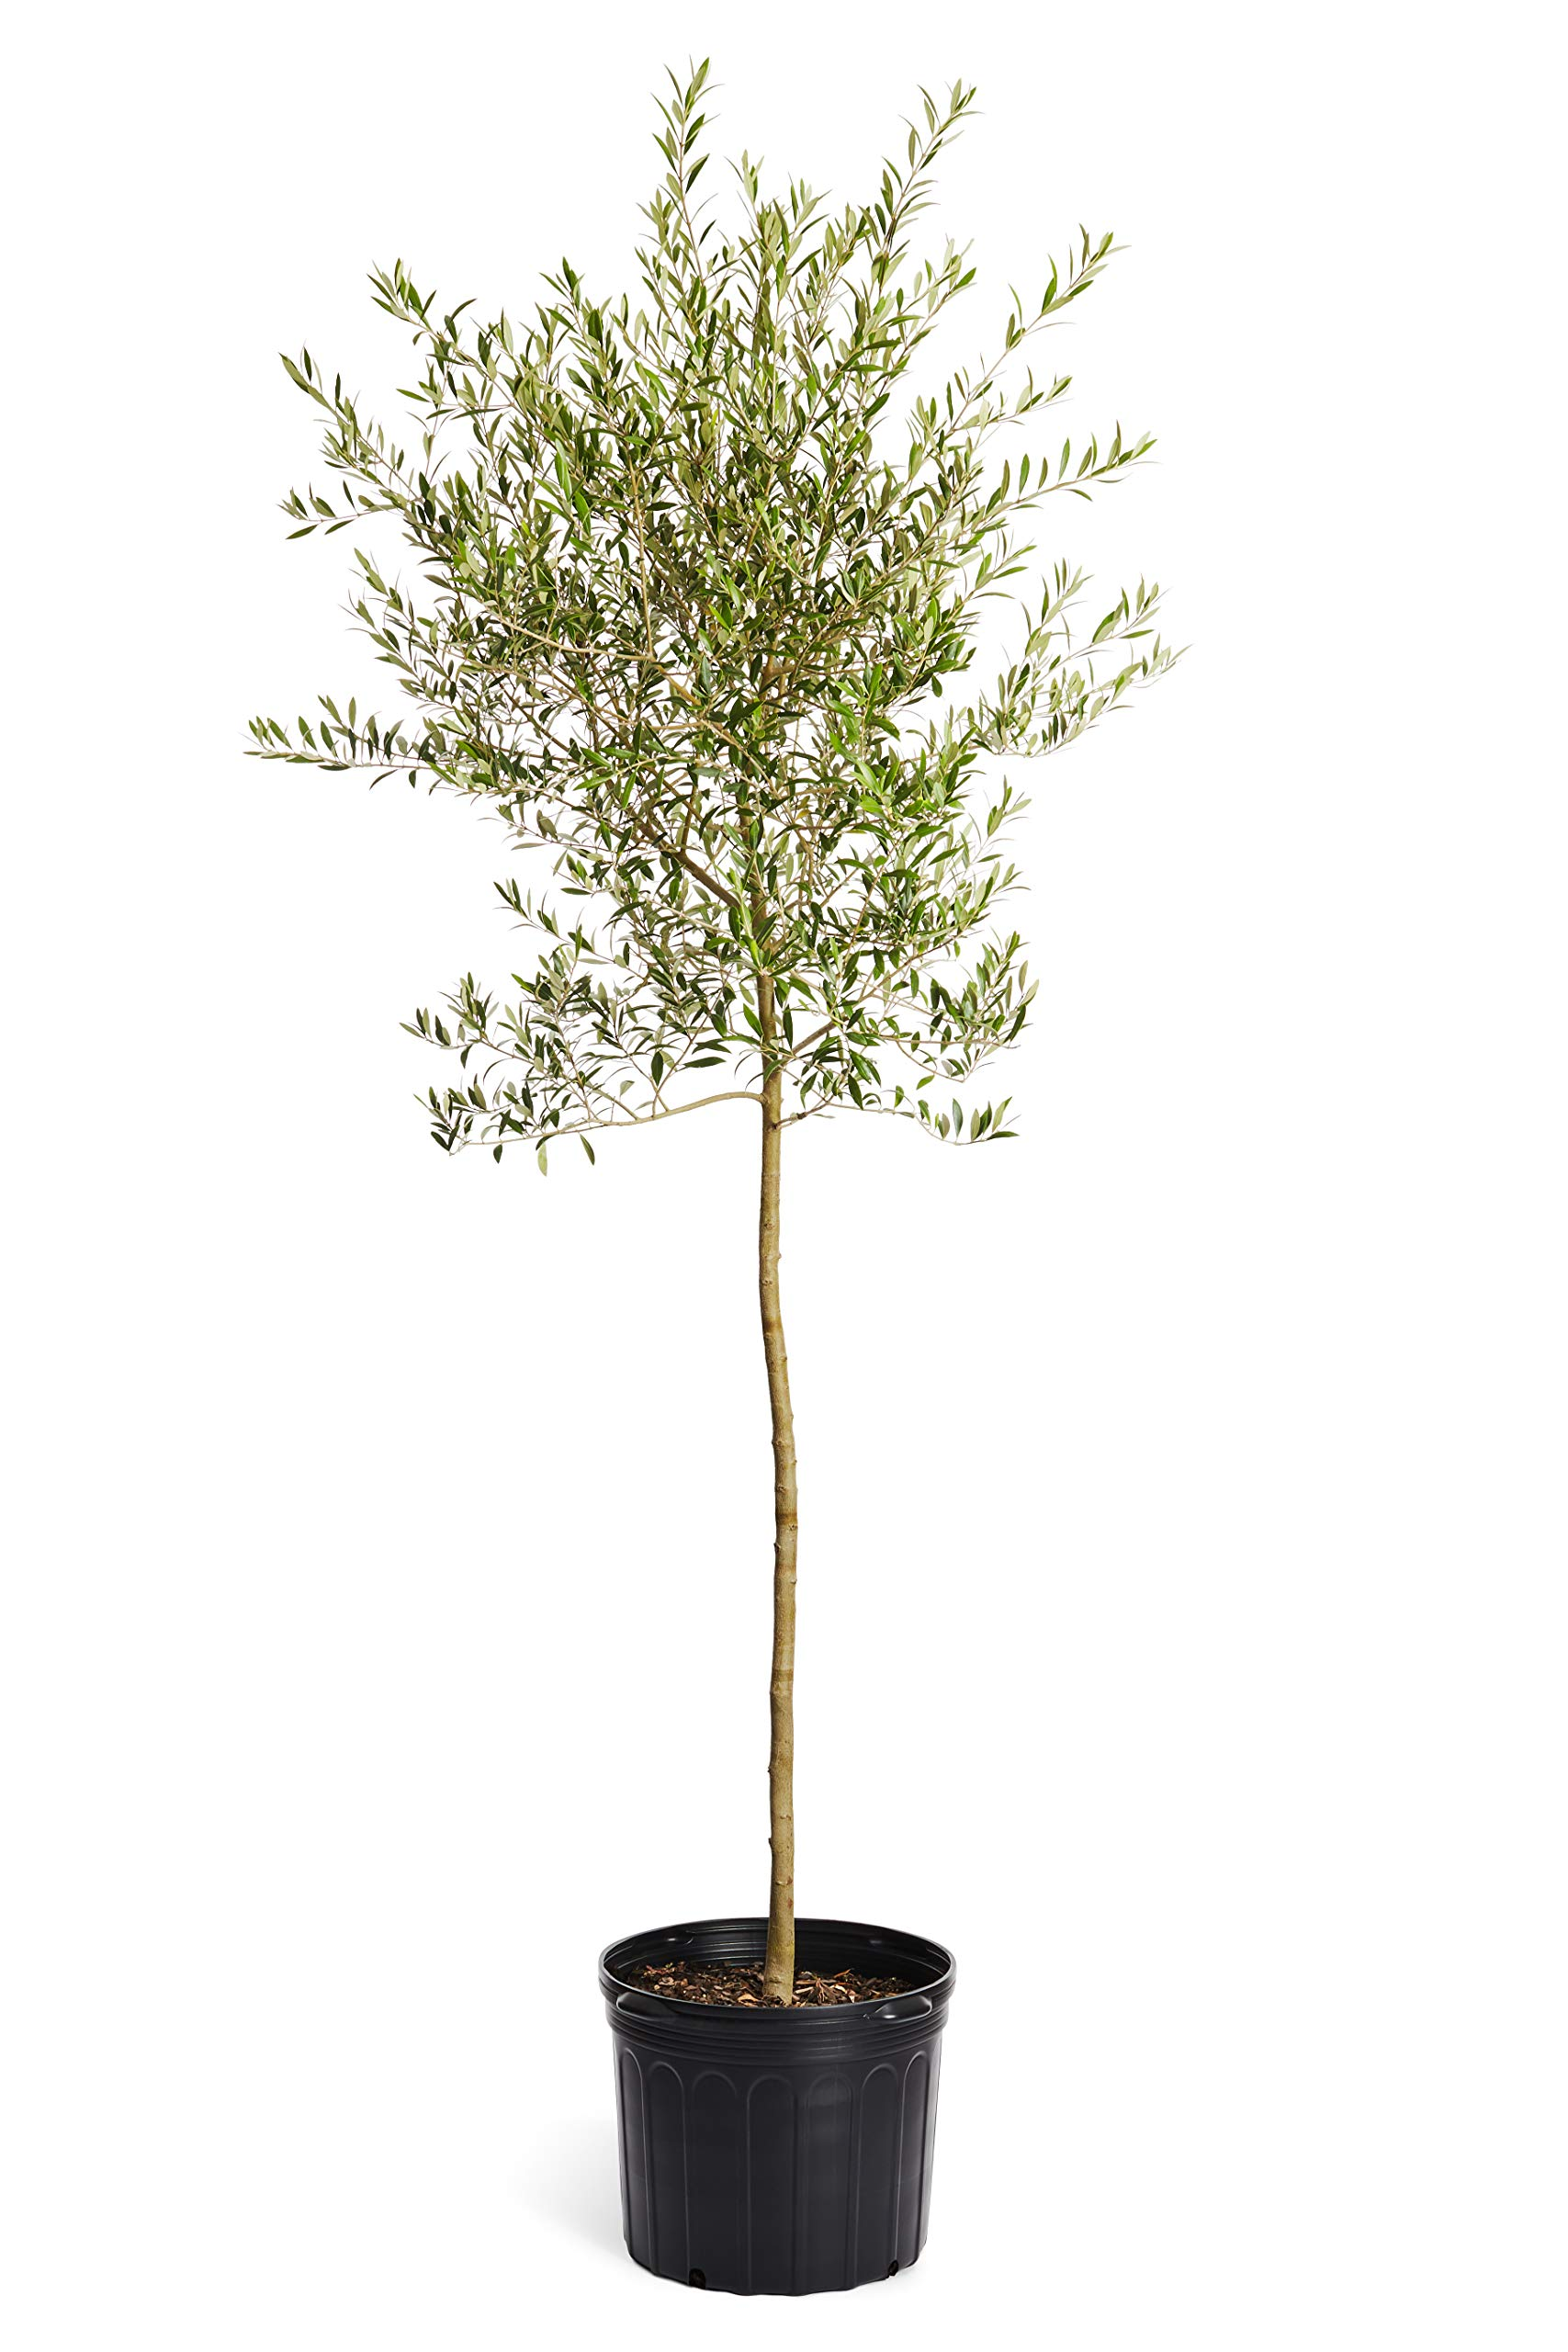 Arbequina Olive Tree 5-6 feet Tall - Get Olives 1st Year with Large Olive Trees - Indoor/Patio Live Olive Trees